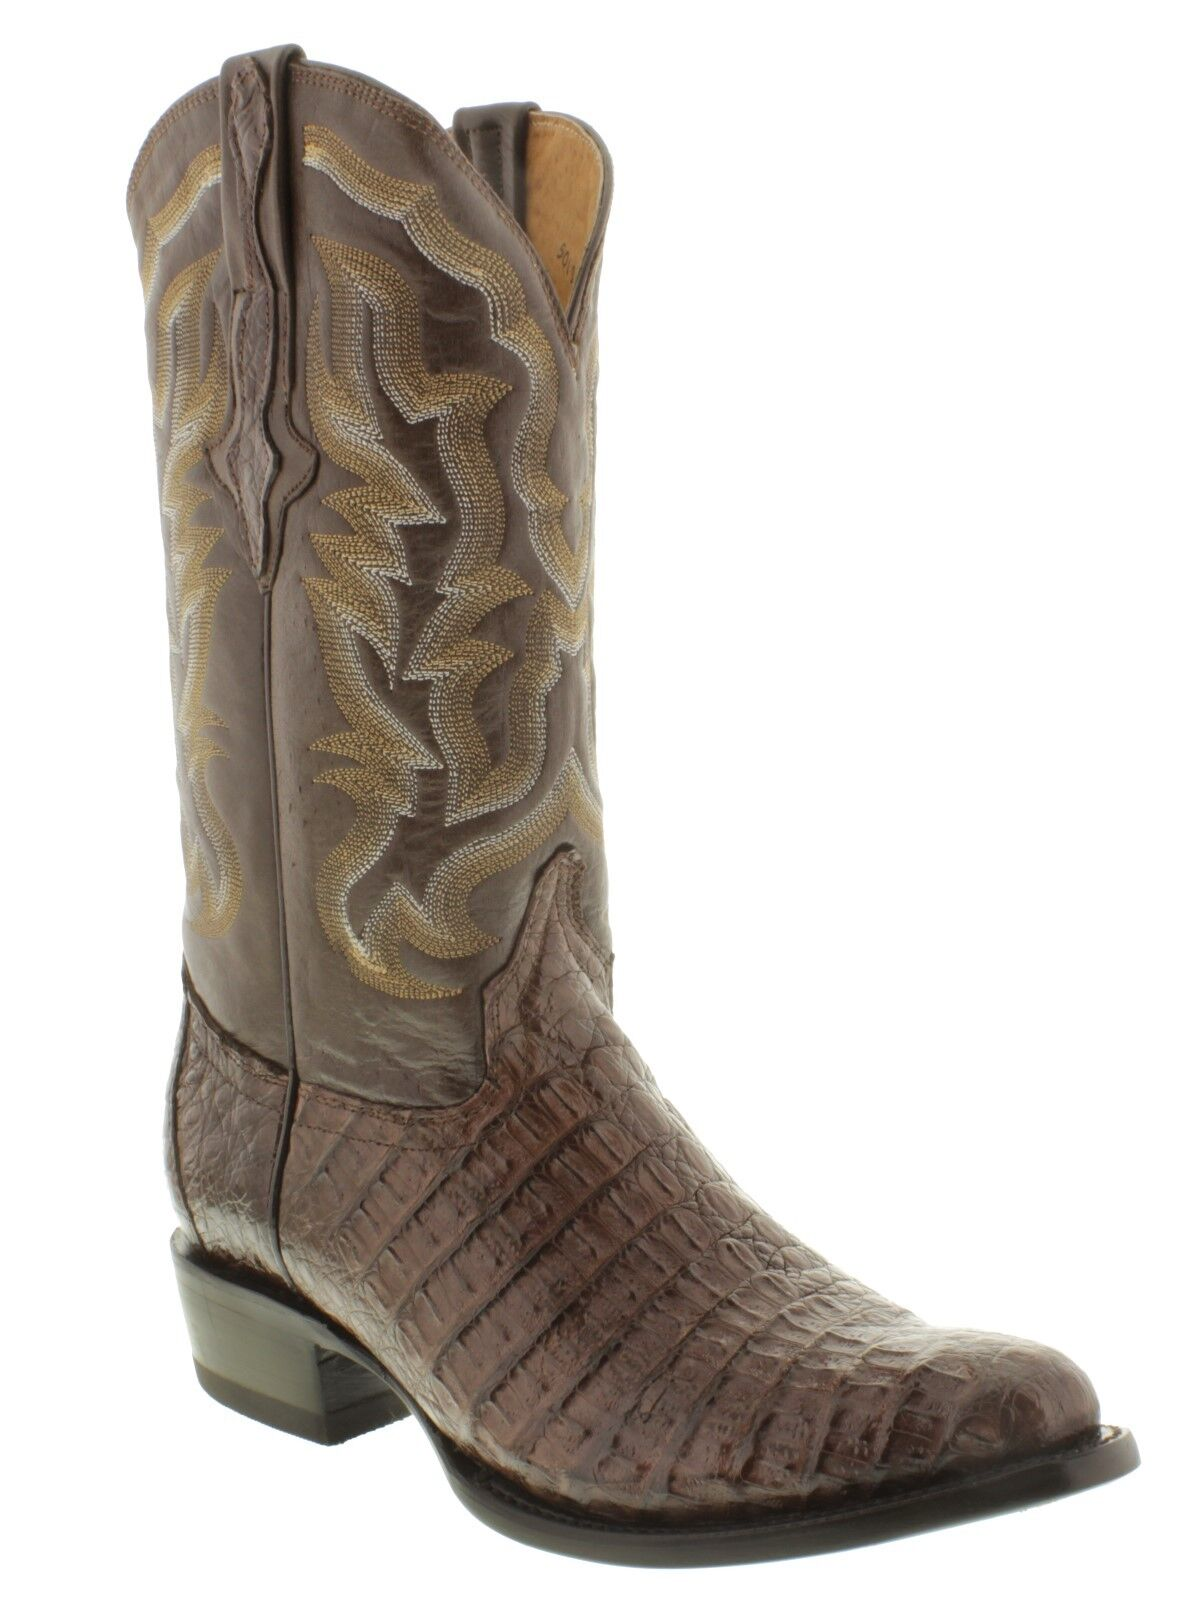 Brown All Real Crocodile Skin Leather Cowboy Boots Exotic Alligator Round Toe